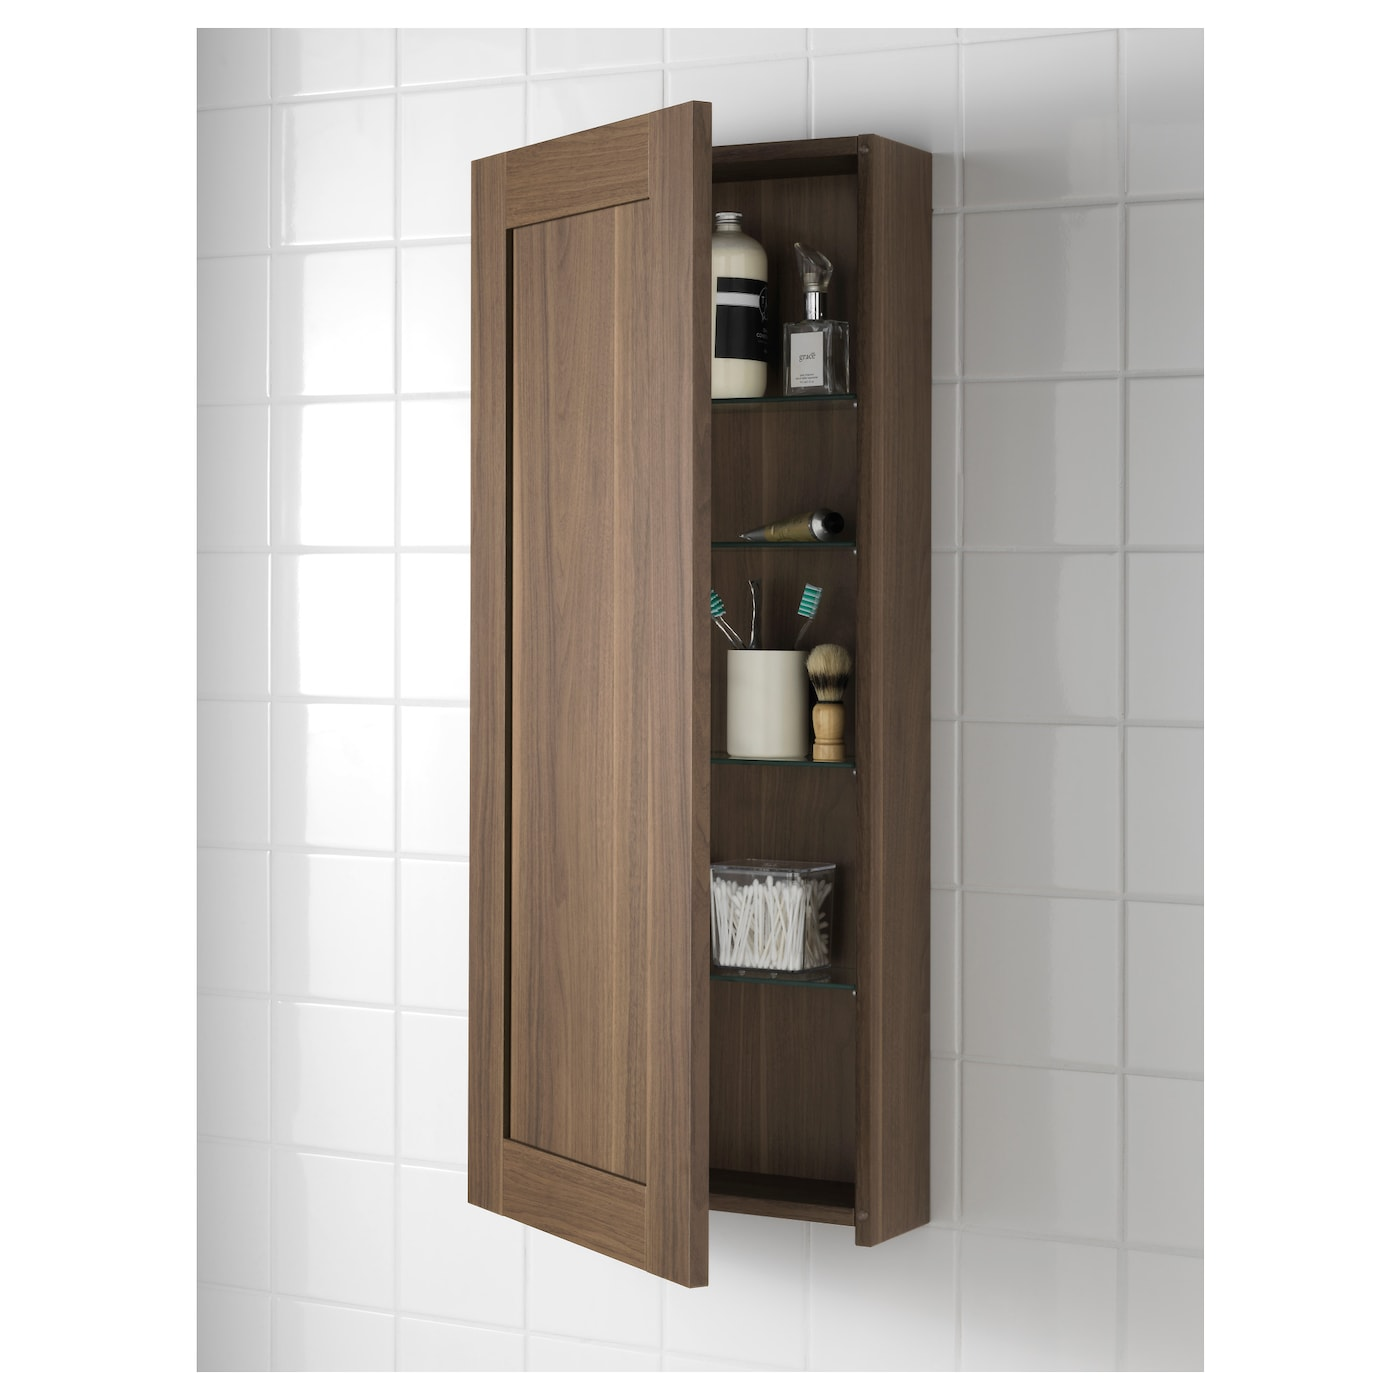 Light Wood Kitchen Cabinets Godmorgon Wall Cabinet With 1 Door Walnut Effect 40x14x96